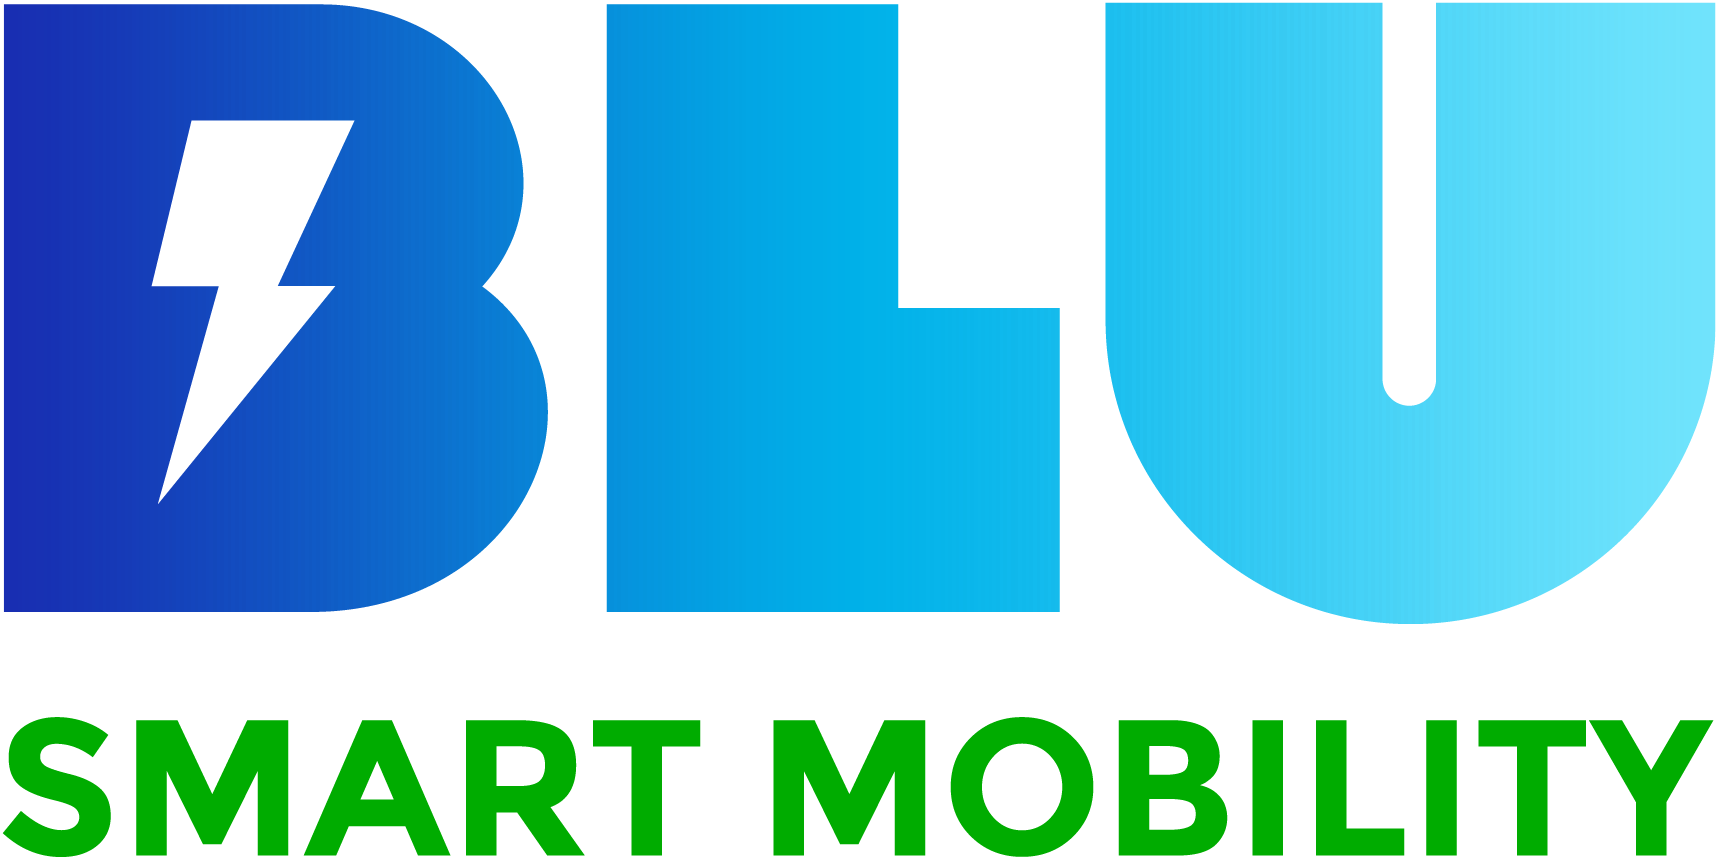 BluSmart is India's first all-electric shared mobility platform to provide a responsible mobility solution to the people.